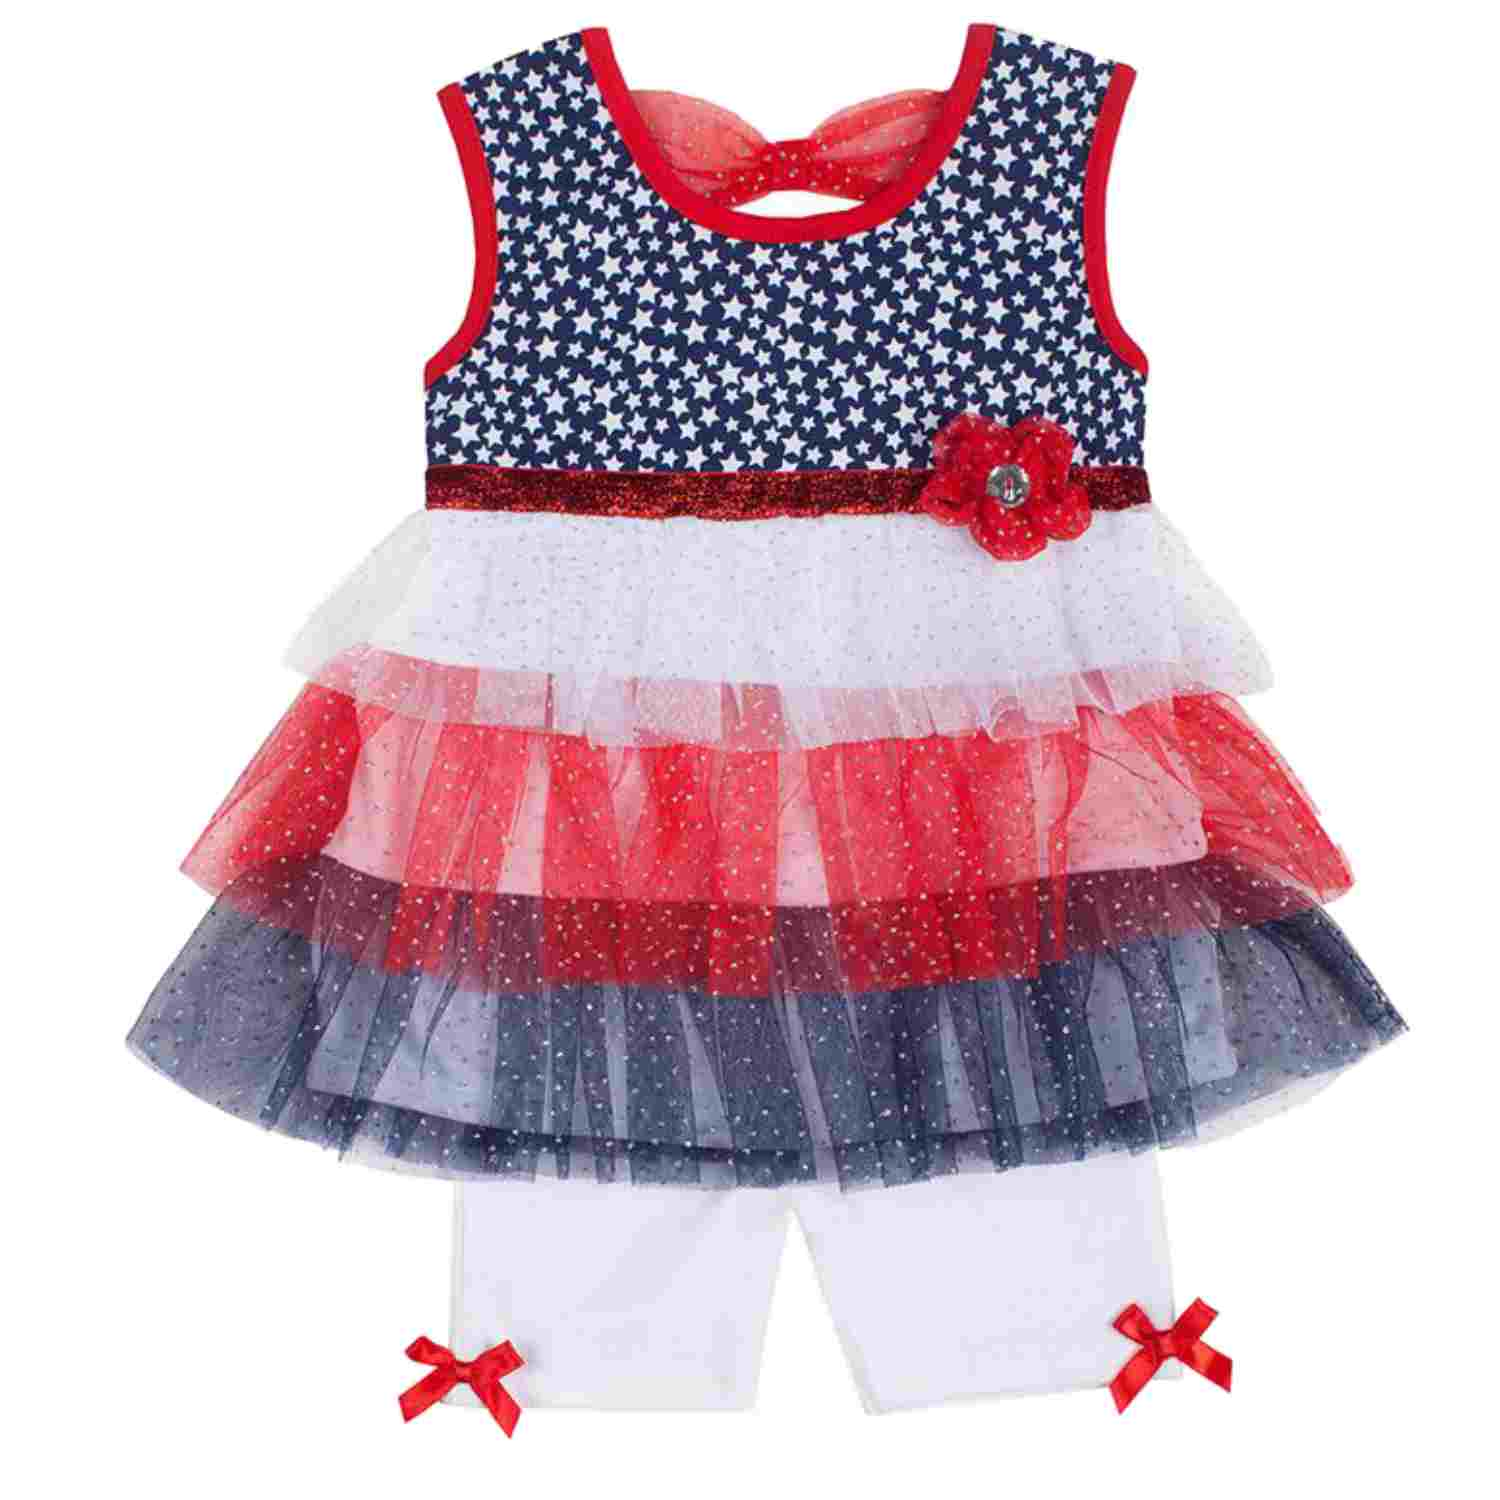 Little Lass Infant & Toddler Girls Patriotic Tulle Top & Bottoms Outfit Set